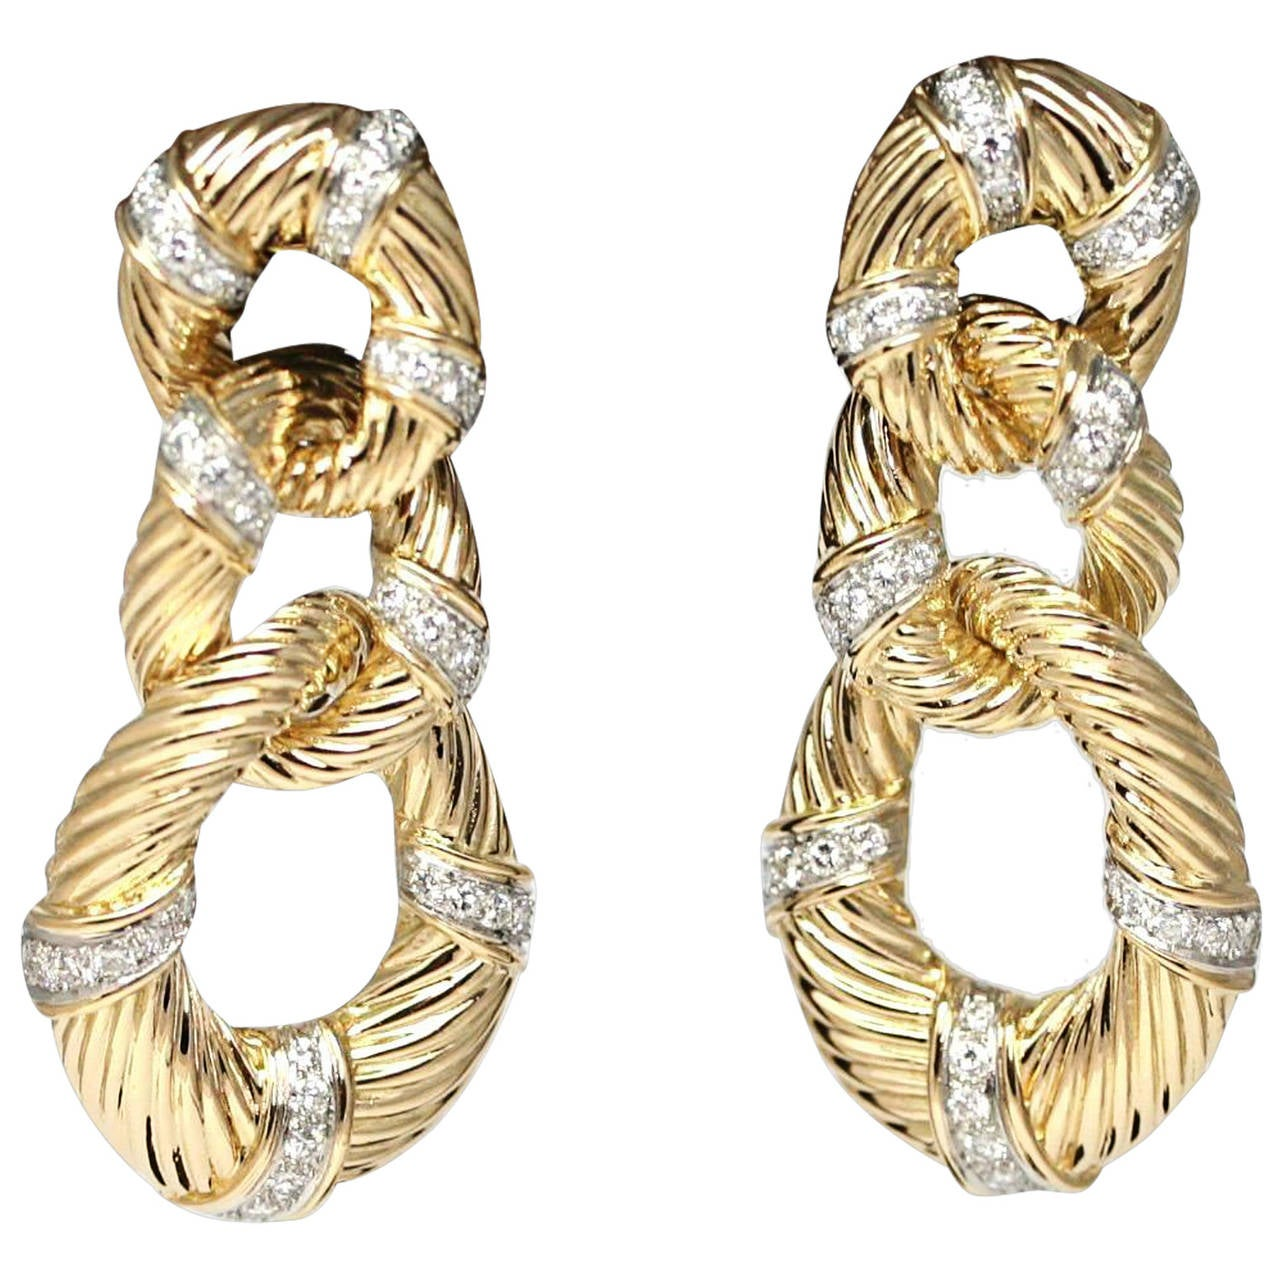 1970s Van Cleef & Arpels New York Diamond Gold Chandelier Earrings